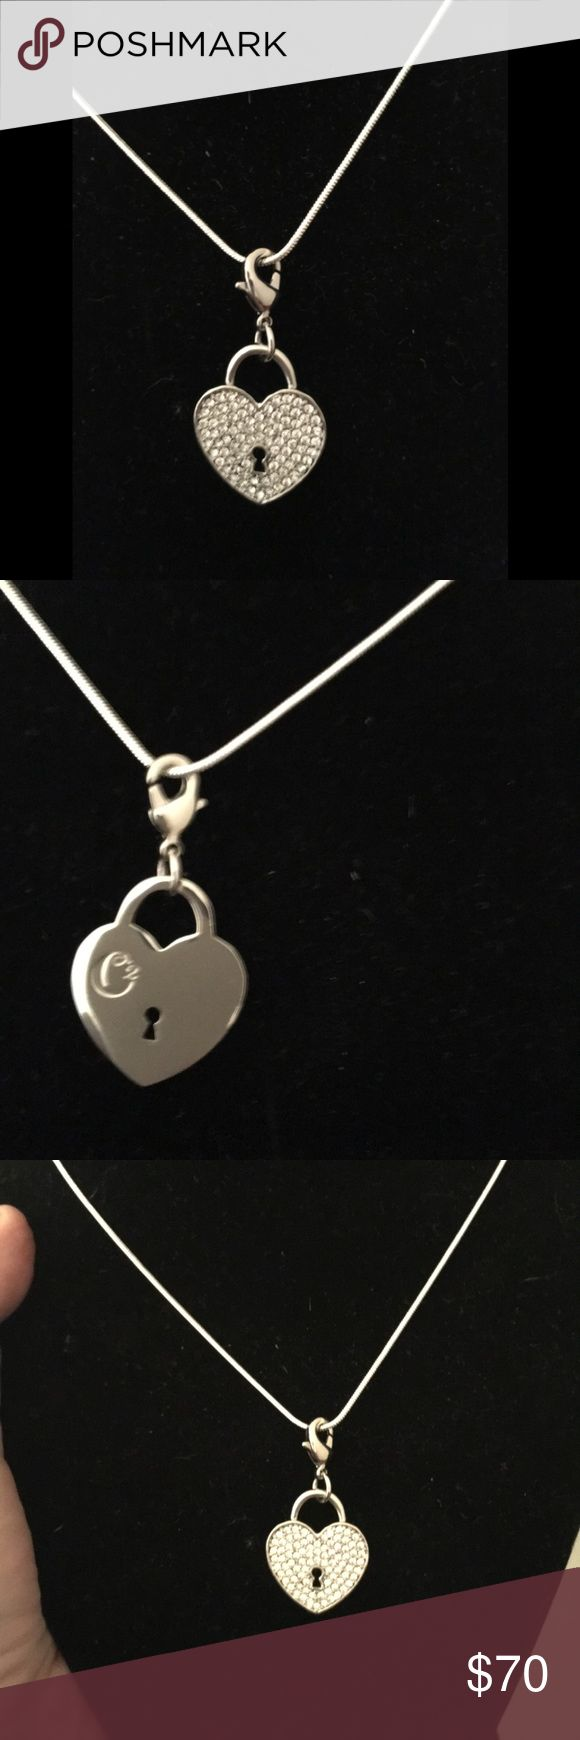 """Origami Owl Swarovski Heart dangle with necklace Origami Owl Swarovski Heart dangle and Solid Sterling Silver .925 22"""" Snake chain Necklace.  **Brand new with tags.  This is a lobster claw dangle can be taken off and put on other chains or bracelets.  *** I have 2 pair of silver hoops and puffed Heart Swarovski dangle earrings to match in another listing!   Authentic and retired Origami Owl dangle made with lead free and tarnish free medals. Chain is not Origami brand and is solid sterling…"""